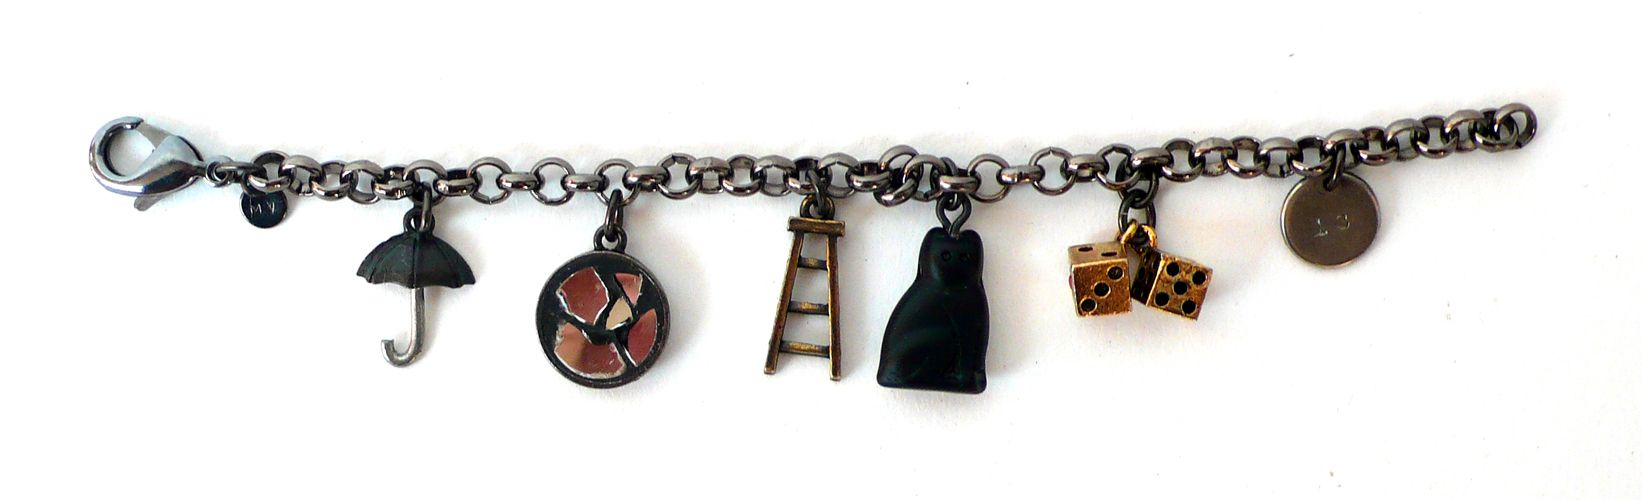 Bad Luck Charm Bracelet  All the worst luck in one place. Open umbrella, broken mirror, a ladder (and you just walked under it), black cat, snake eyes, and the number 13.